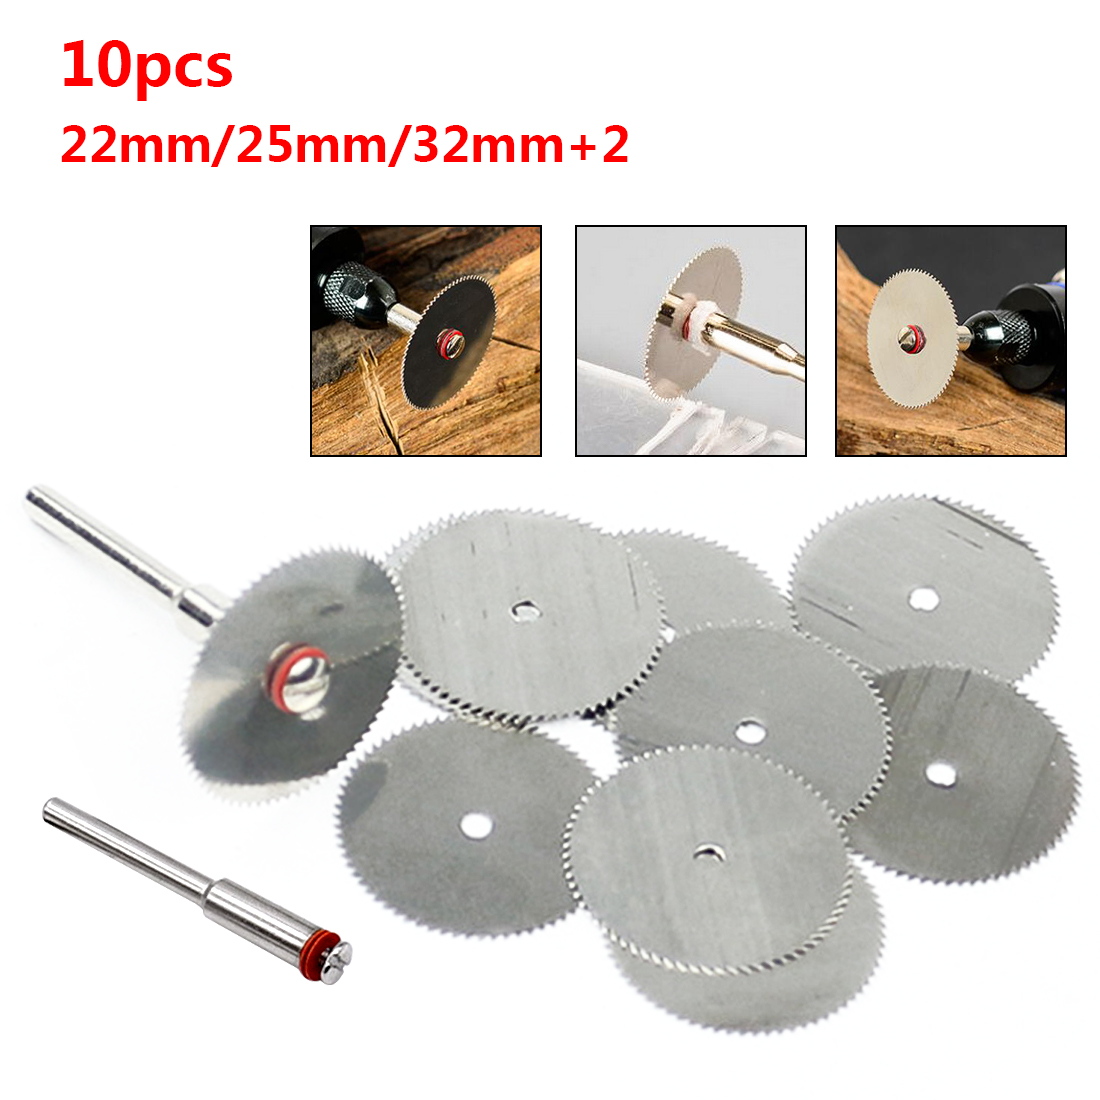 10x Mini HSS Circular Saw Blade Cutting Disc Wheel Wood Cutter Rotary Tool Accessory With 2pcs  Mandrel